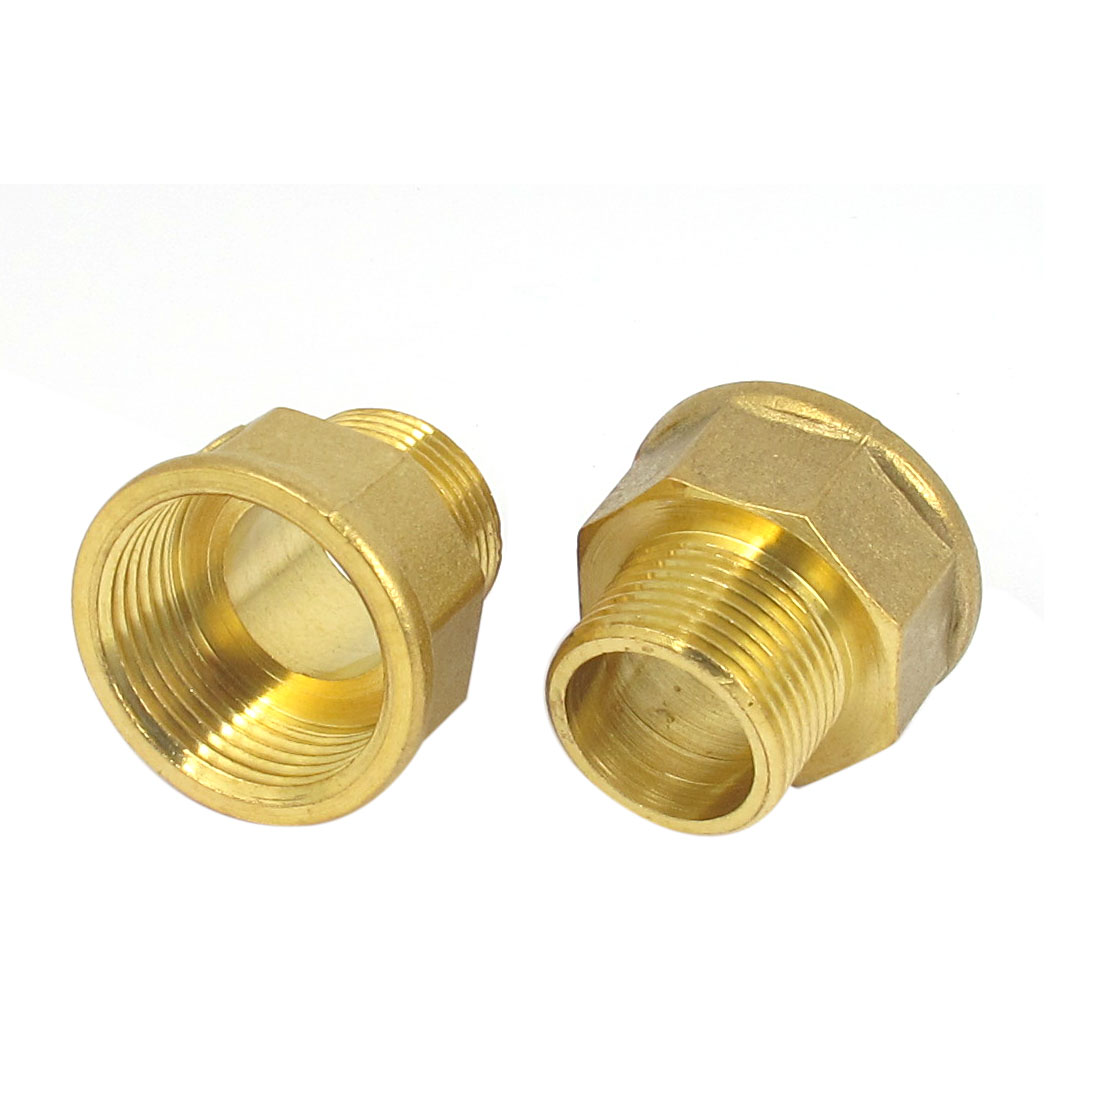 2pcs 1BSP to 3/4BSP M/F Threaded Brass Air Pipe Fittings Reducer Bushing Adapter Gold Tone